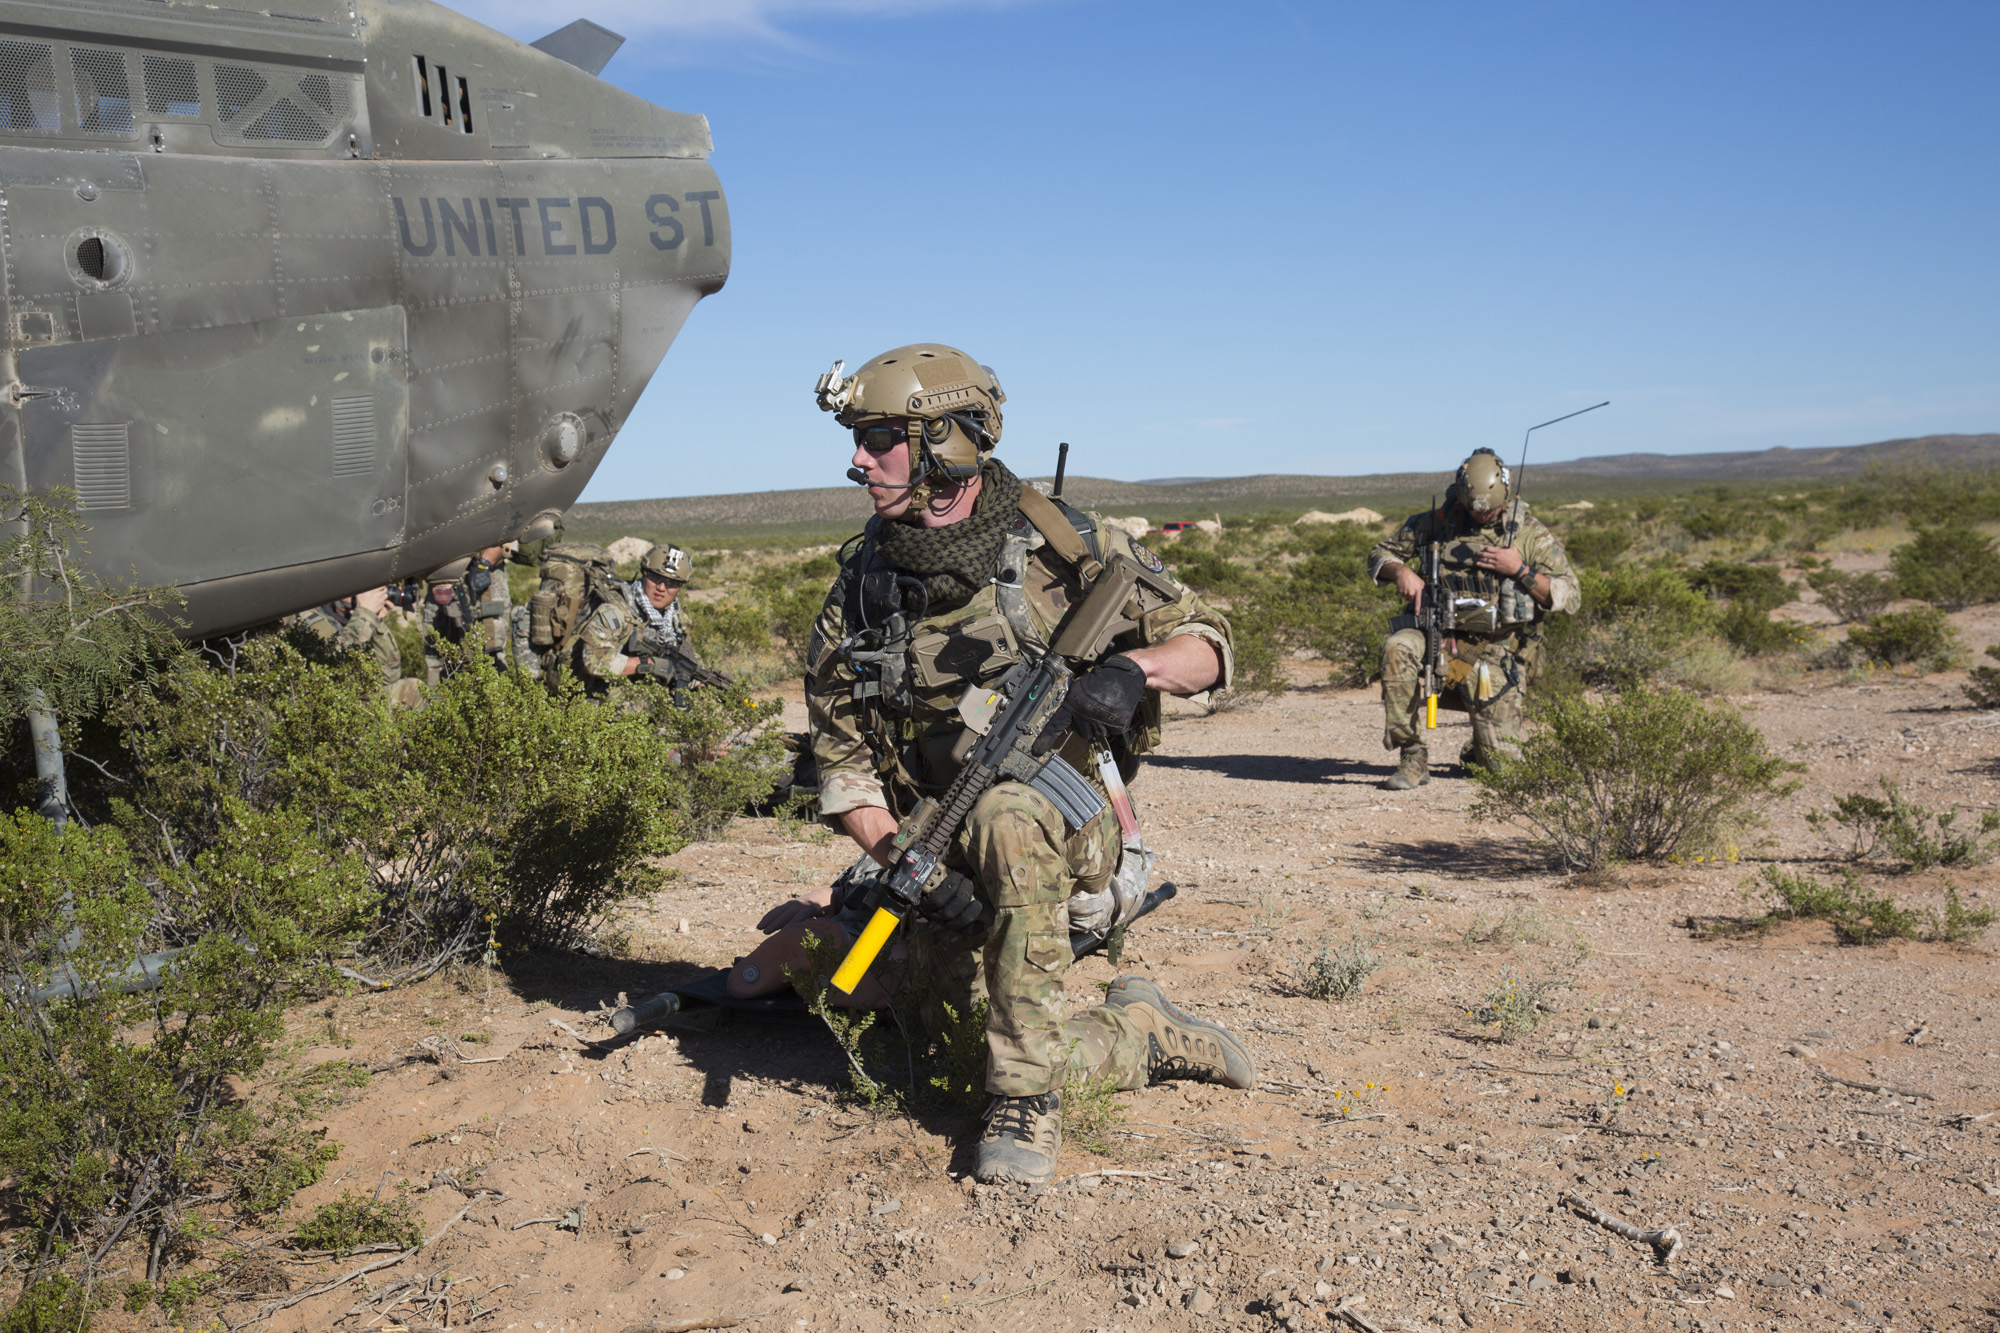 U.S. Special Forces conduct a downed pilot simulation for the AWA 17.1 exercise at Fort Bliss on Oct. 18, 2016. The Army partnered the RAND Arroyo Center to game out a variety of scenarios featuring different end strengths of U.S. services and allied partners; adversaries' force posture and capabilities; treaty obligations; posture and policy constraints; and other key variables in order to predict likely options and outcomes. (U.S. Army photo by Pfc. Alexander Holmes)